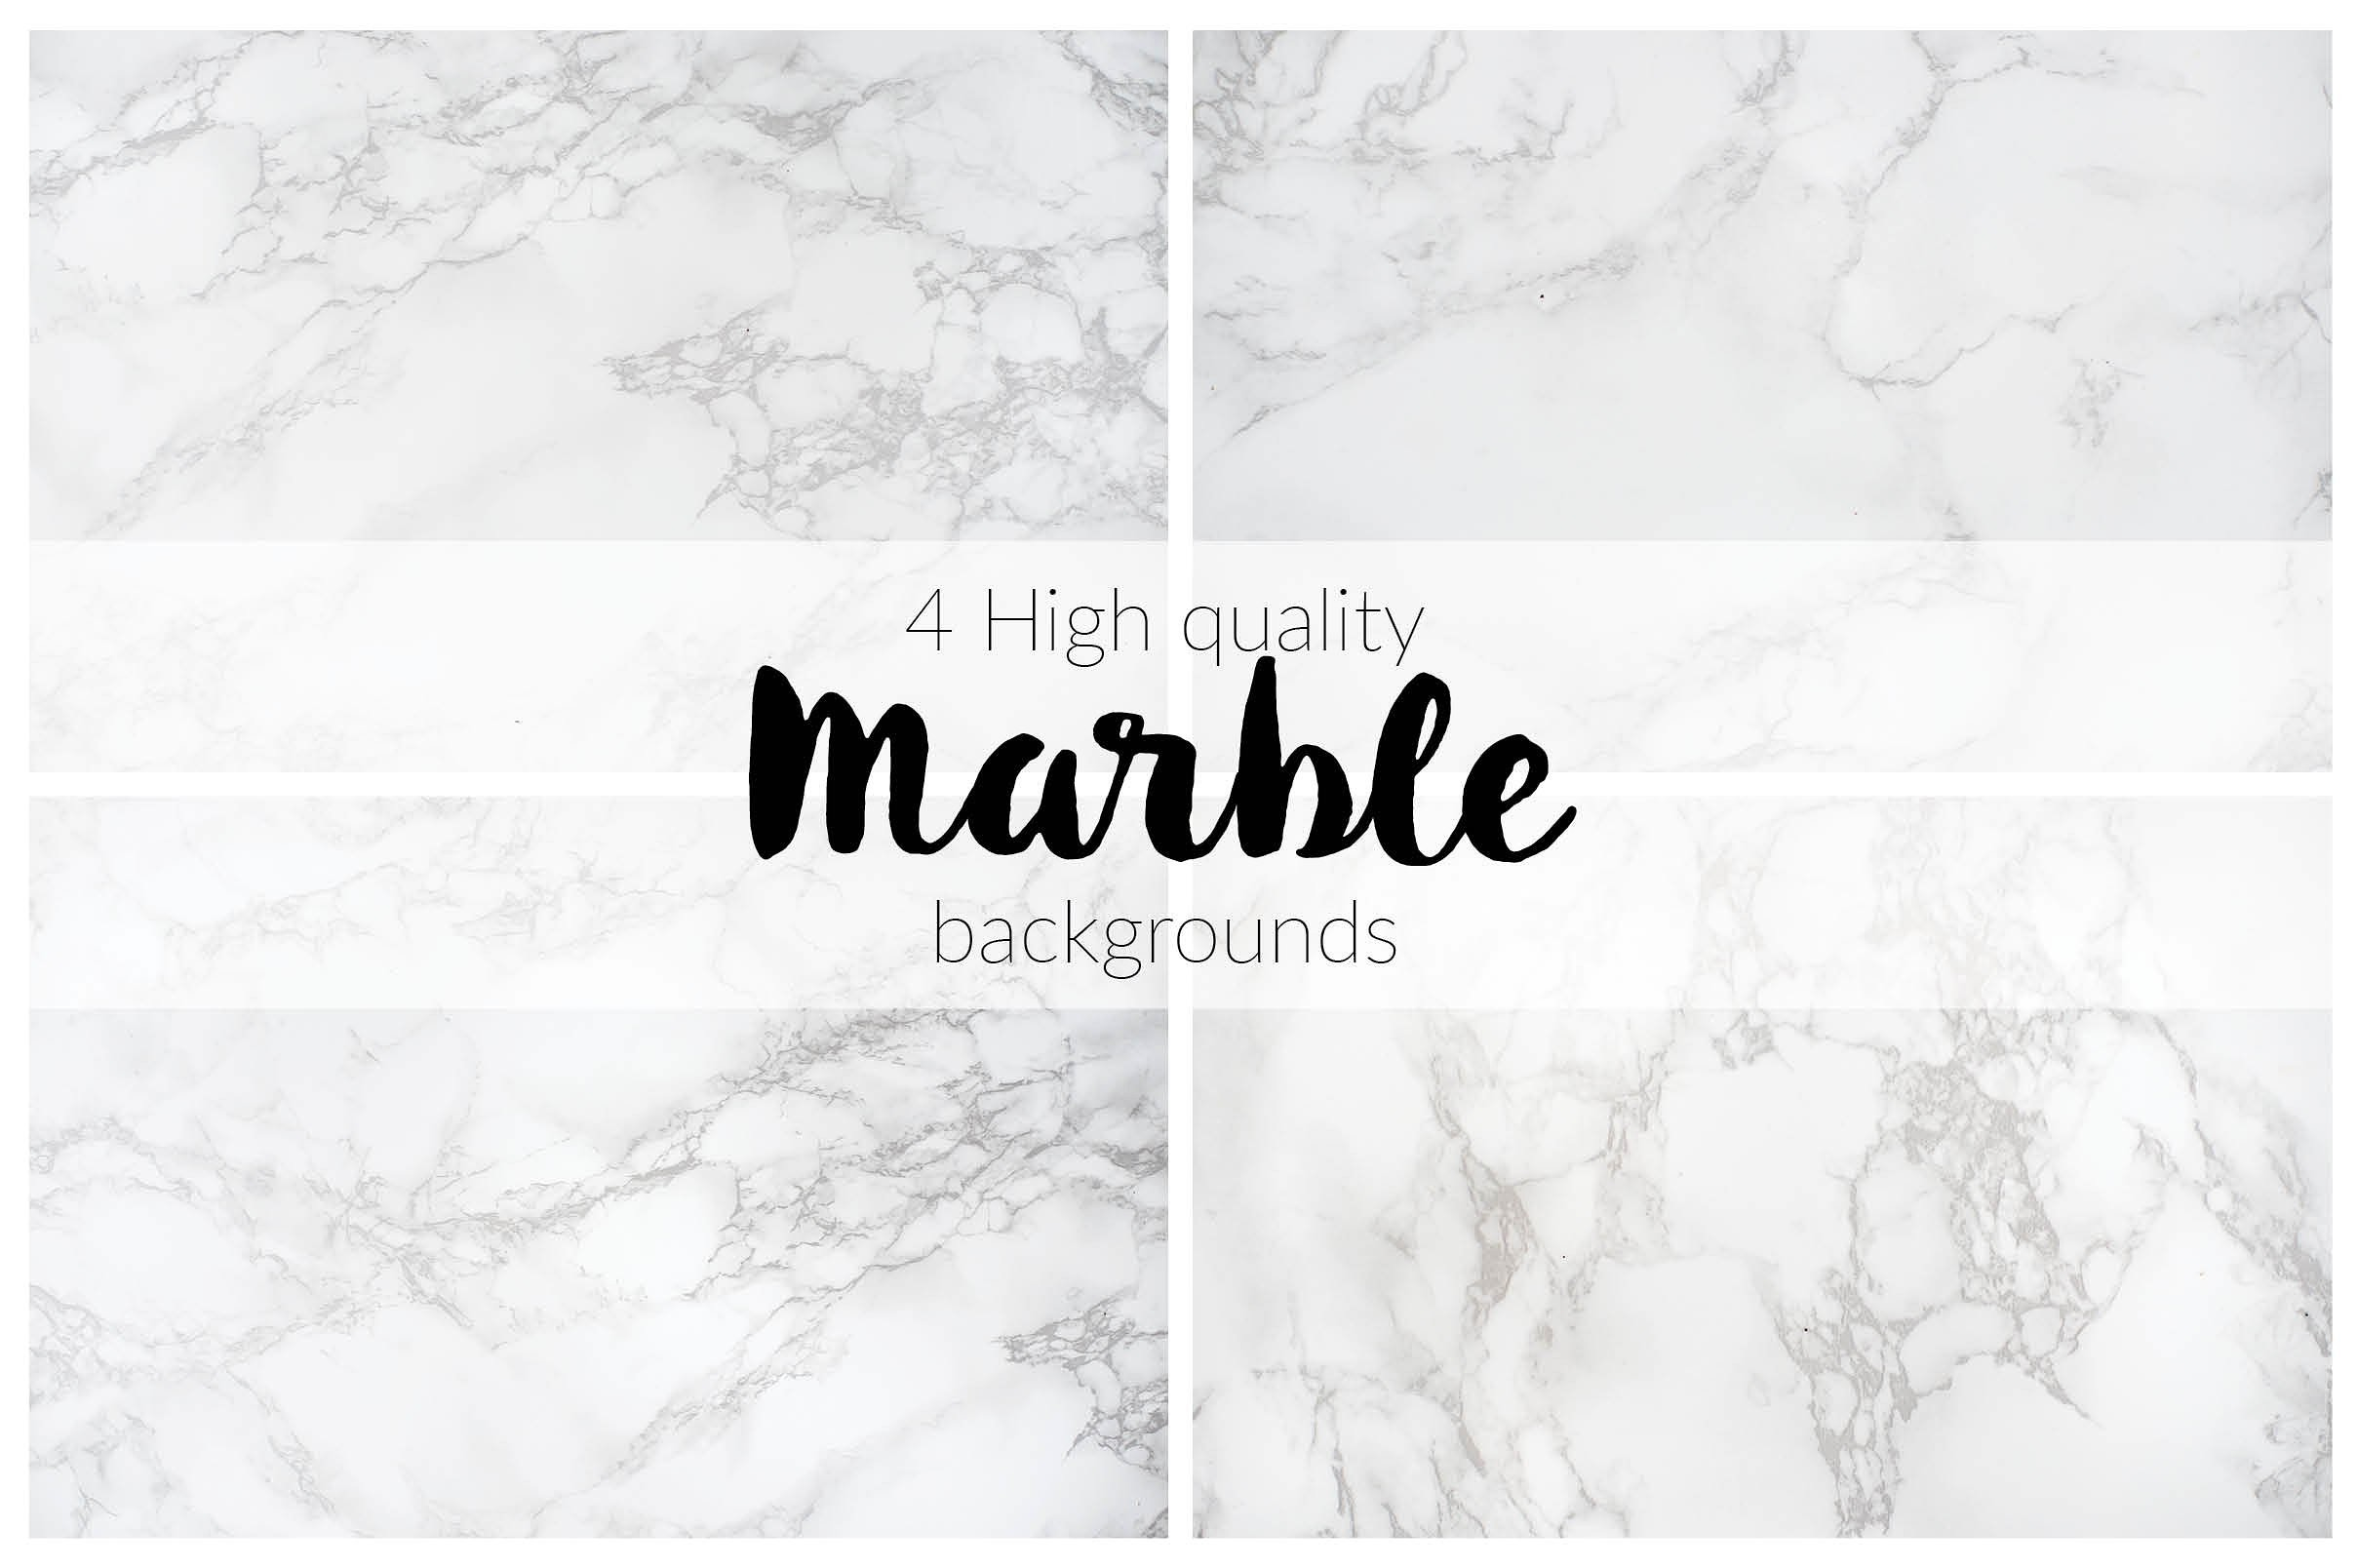 Marble Background Download Free Beautiful Hd Backgrounds For